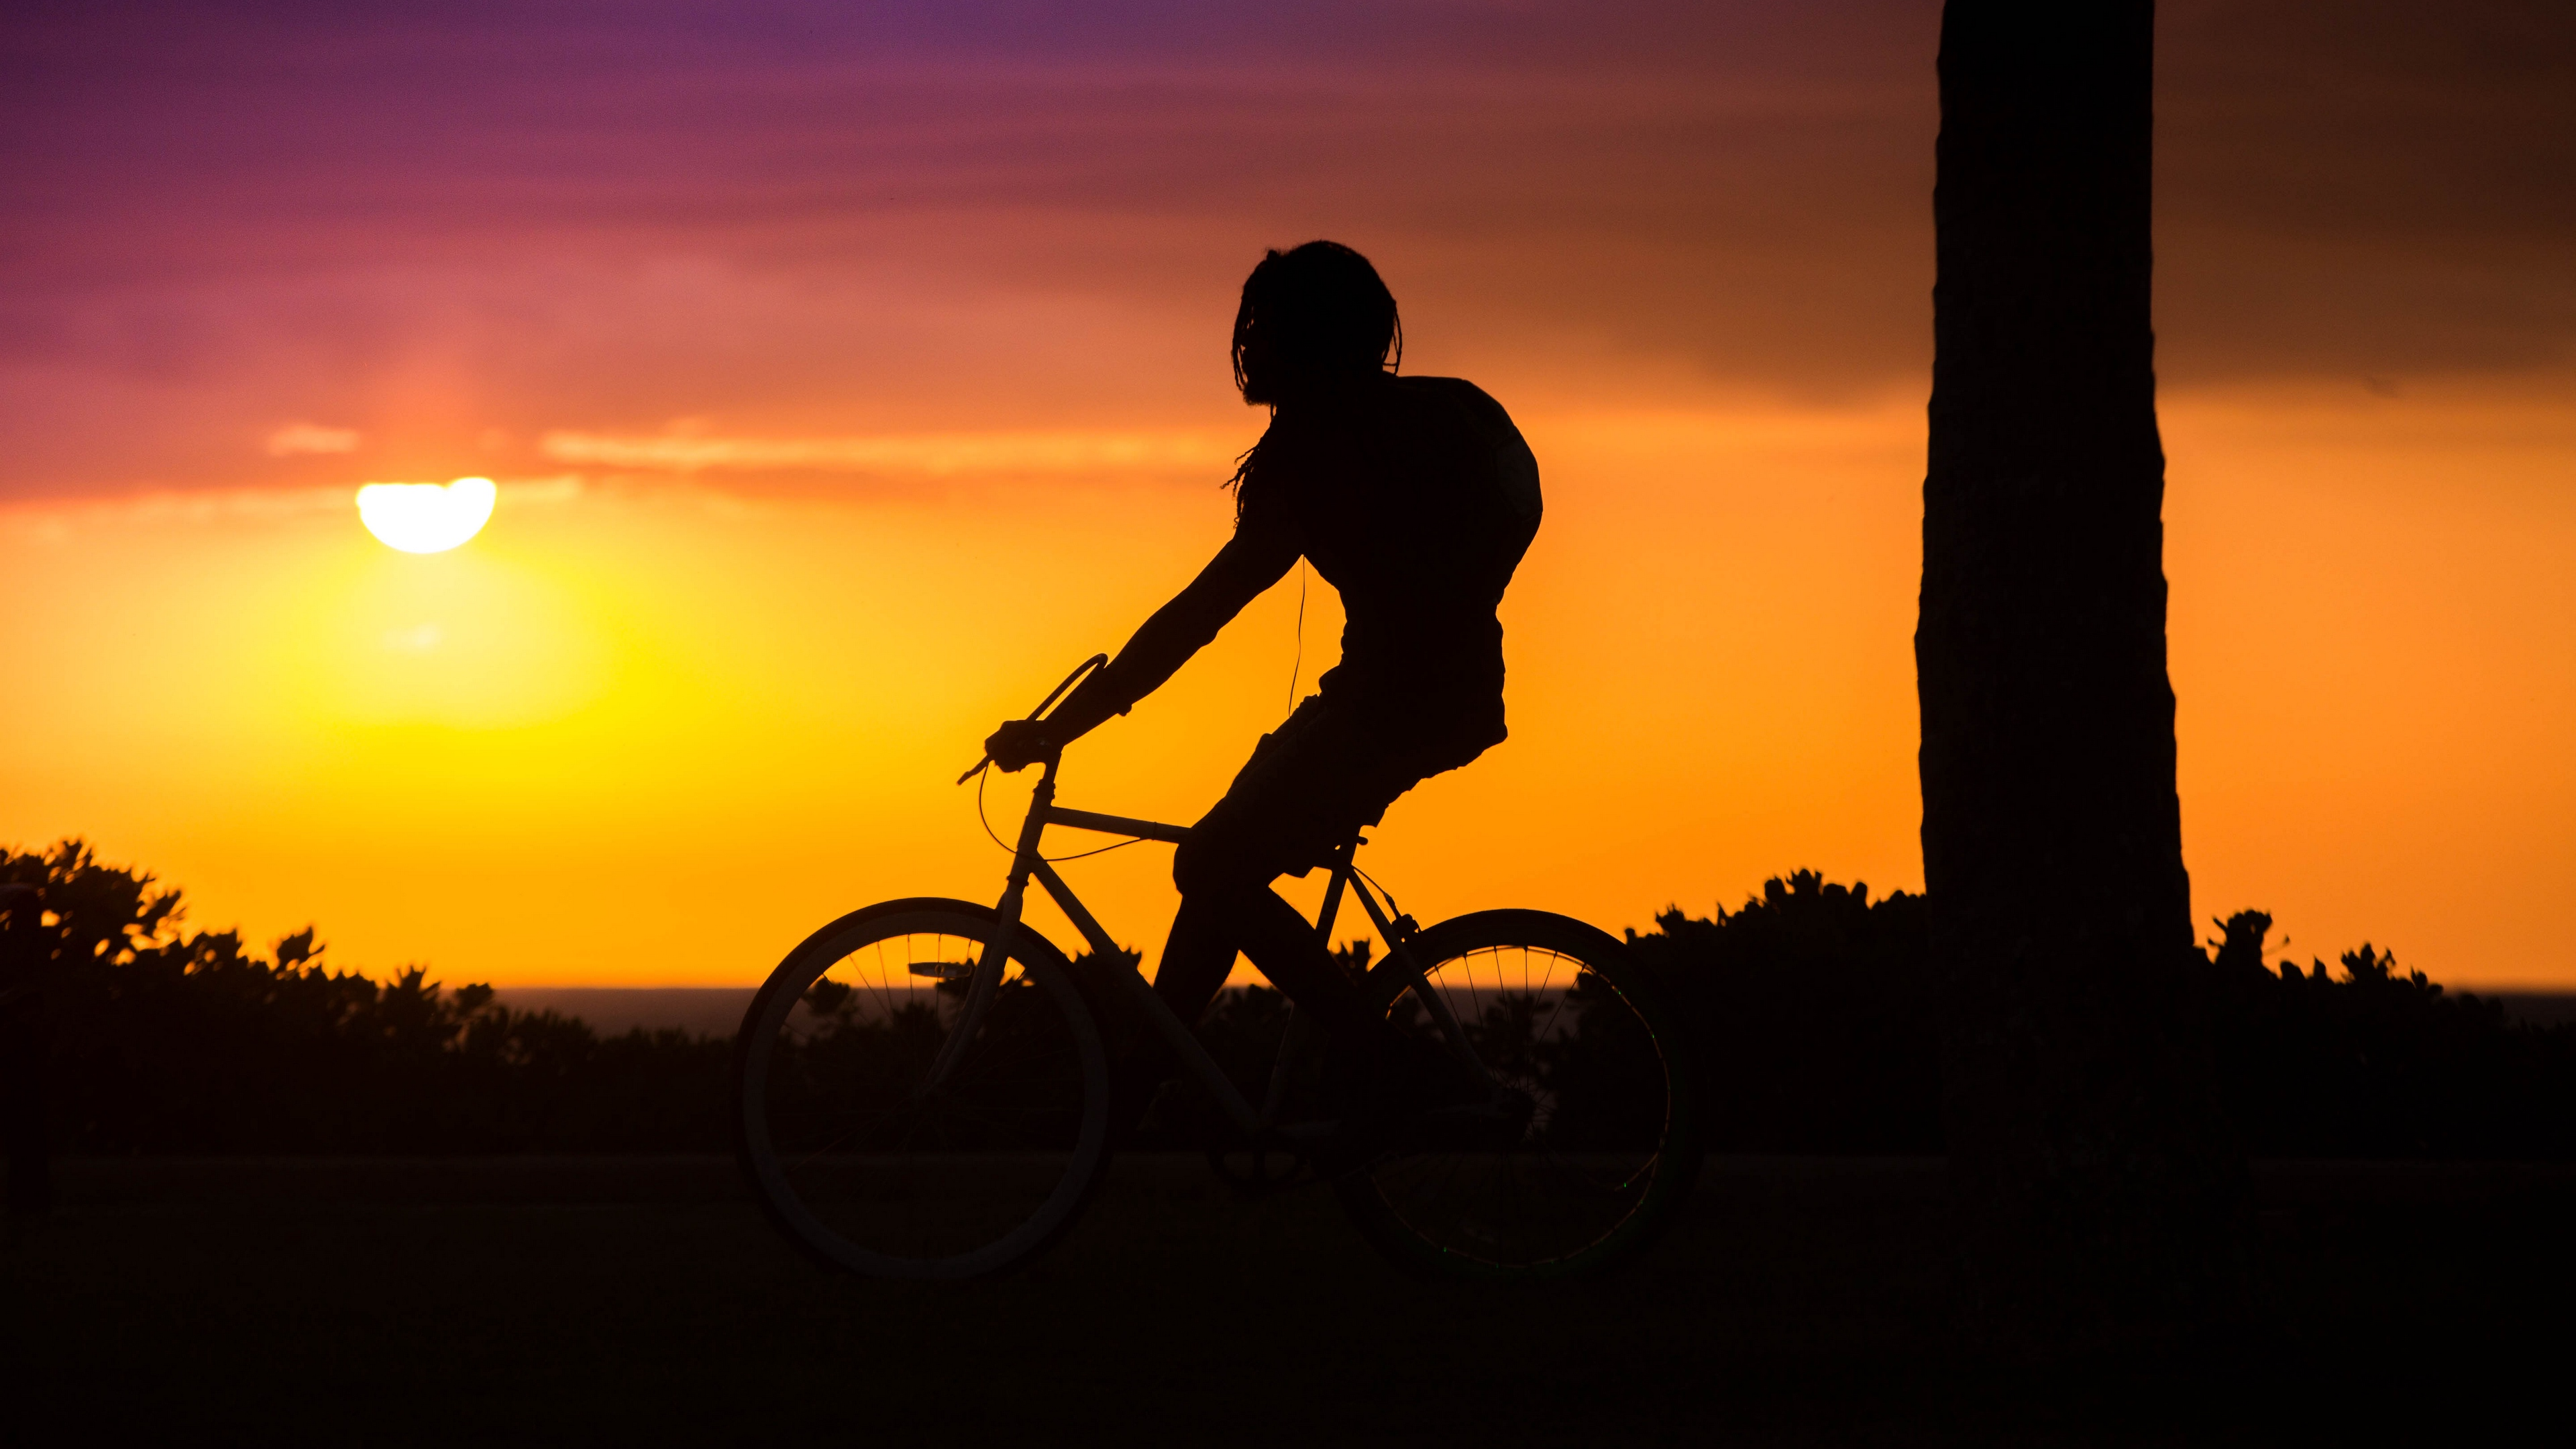 bicyclist cyclist silhouette sunset bicycle 4k 1536017765 - bicyclist, cyclist, silhouette, sunset, bicycle 4k - Silhouette, cyclist, bicyclist